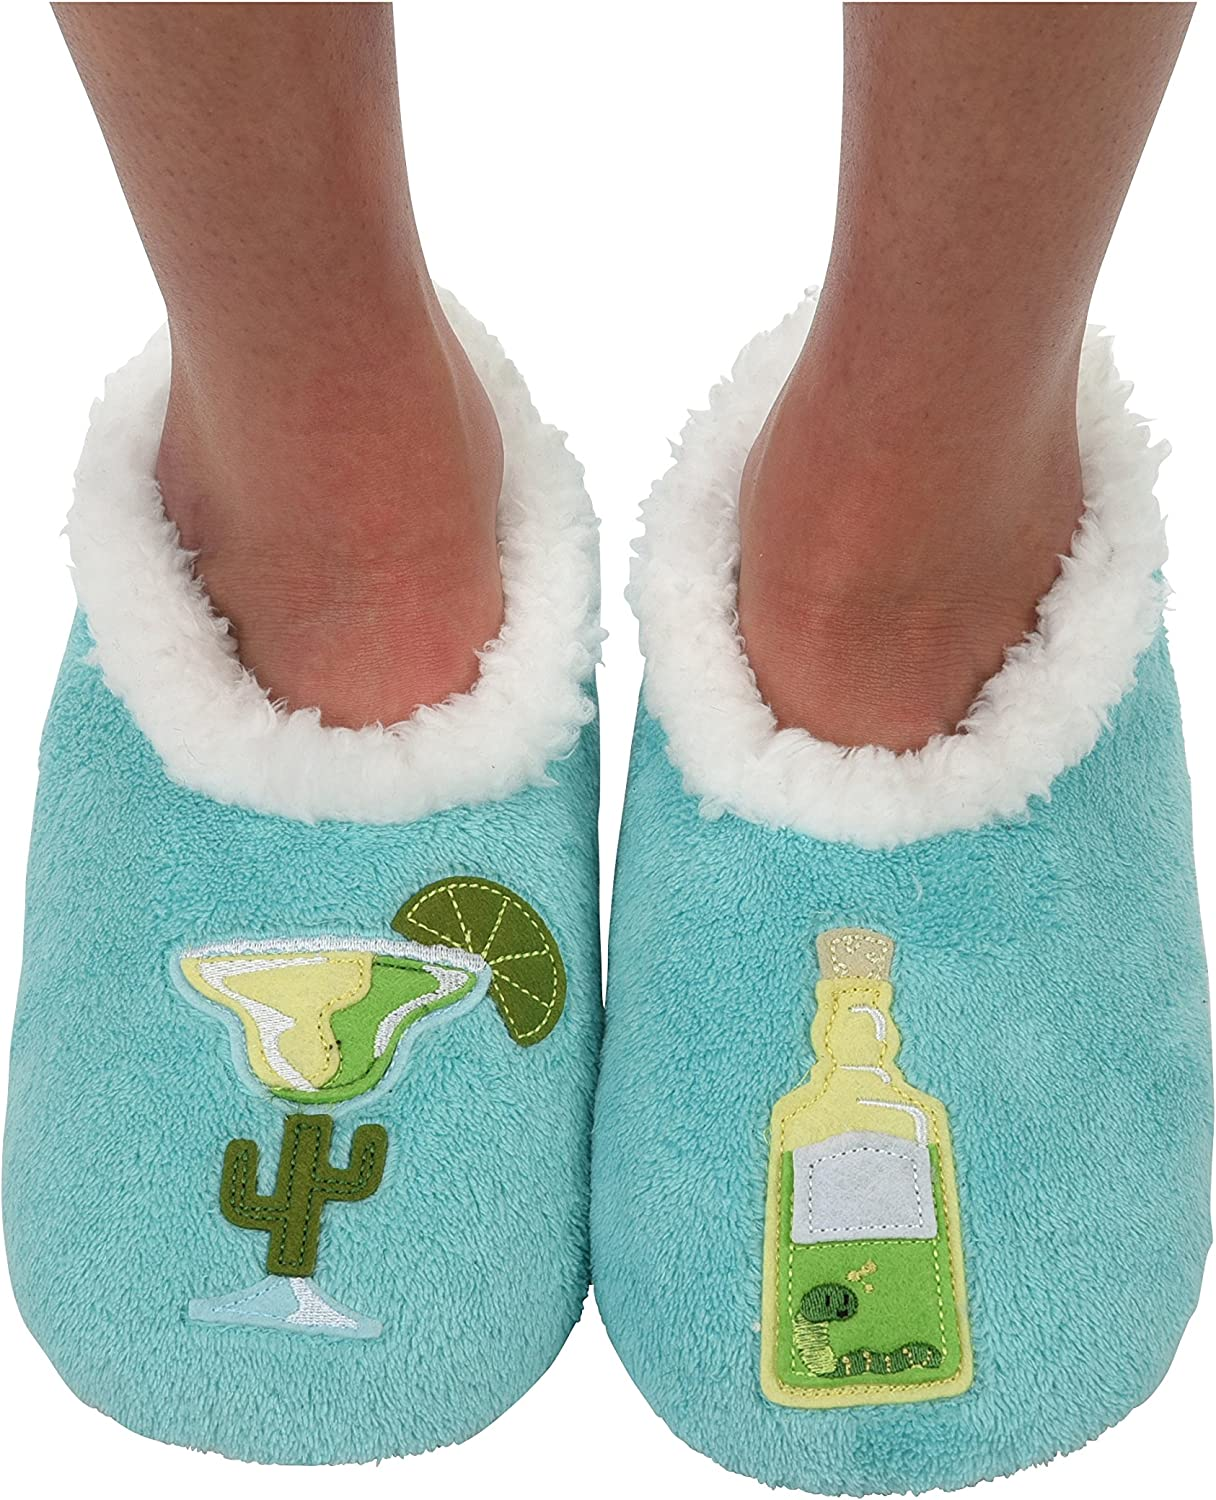 House Slippers Snoozies Pairables Womens Slippers Margarita